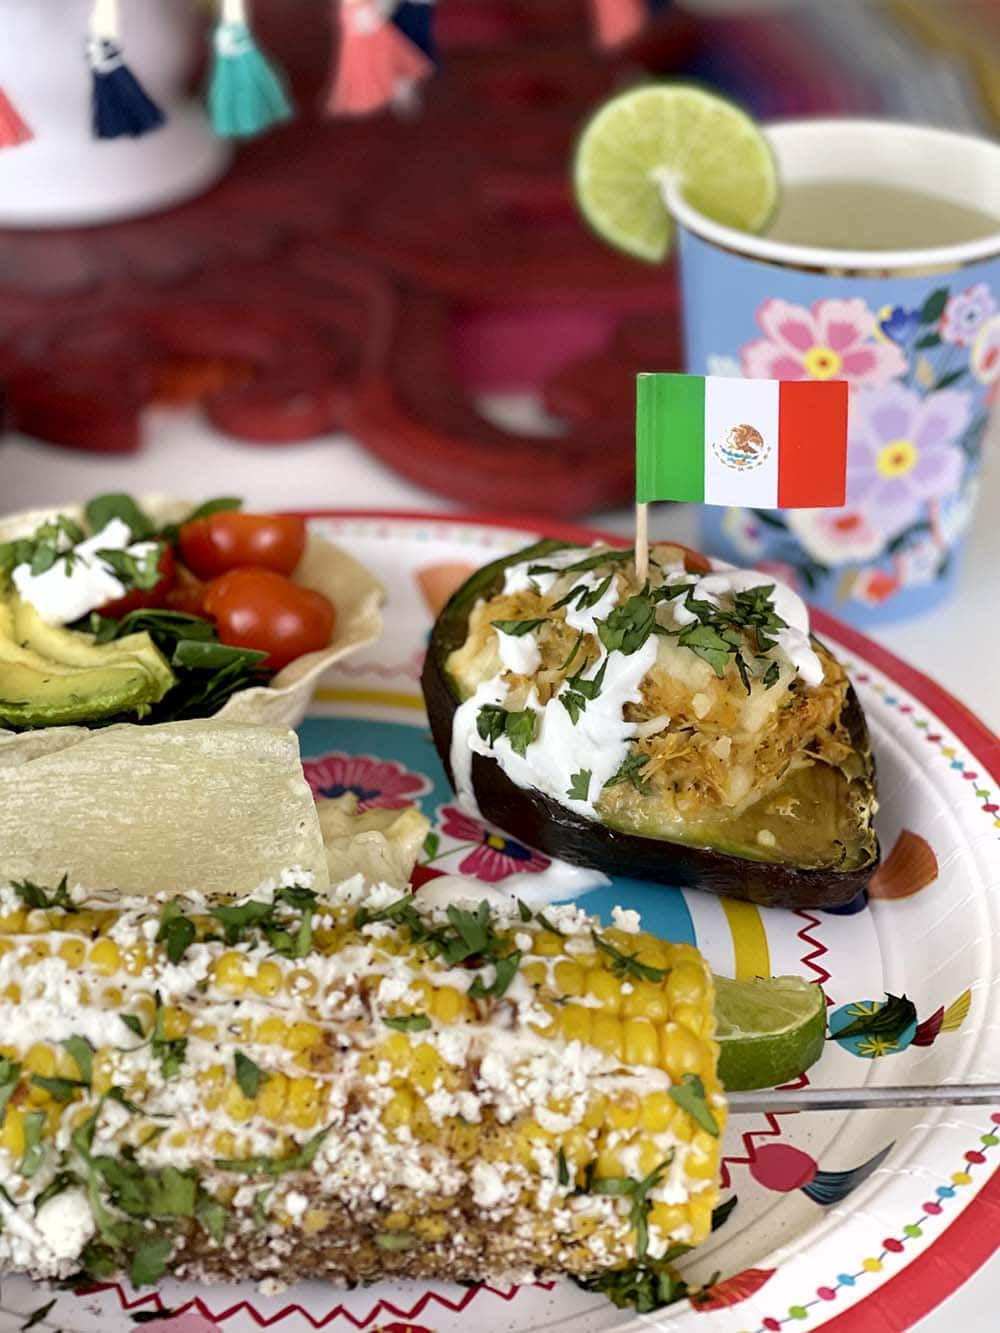 Stuffed avocados baked to perfection for a fiesta dinner